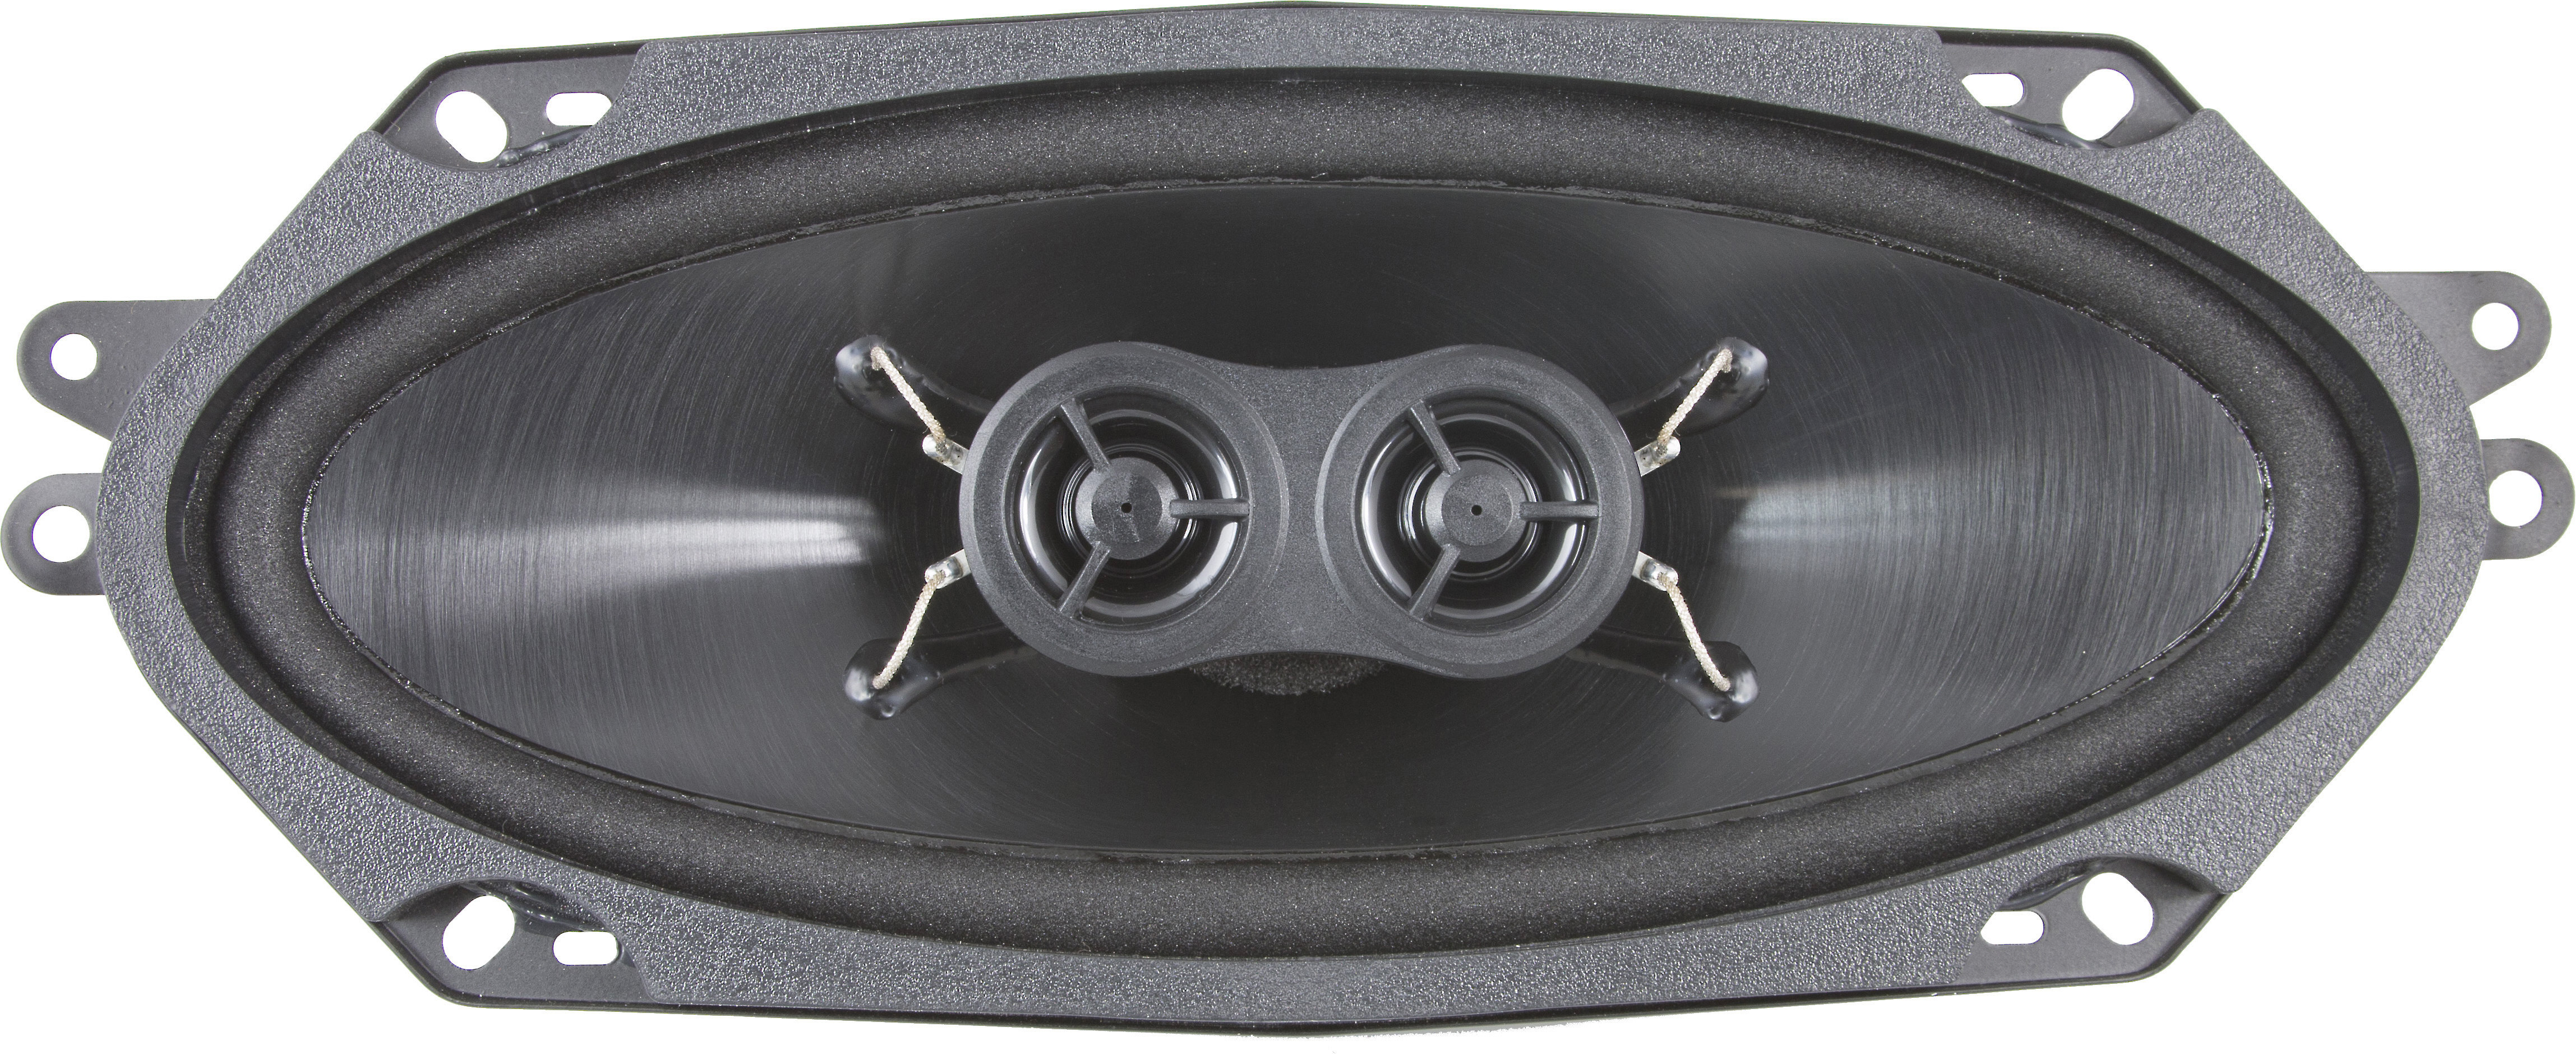 Retro Sound D-412 4x10 Ultra-Thin Stereo Dash Replacement Speaker 4 OHM DVC NEW